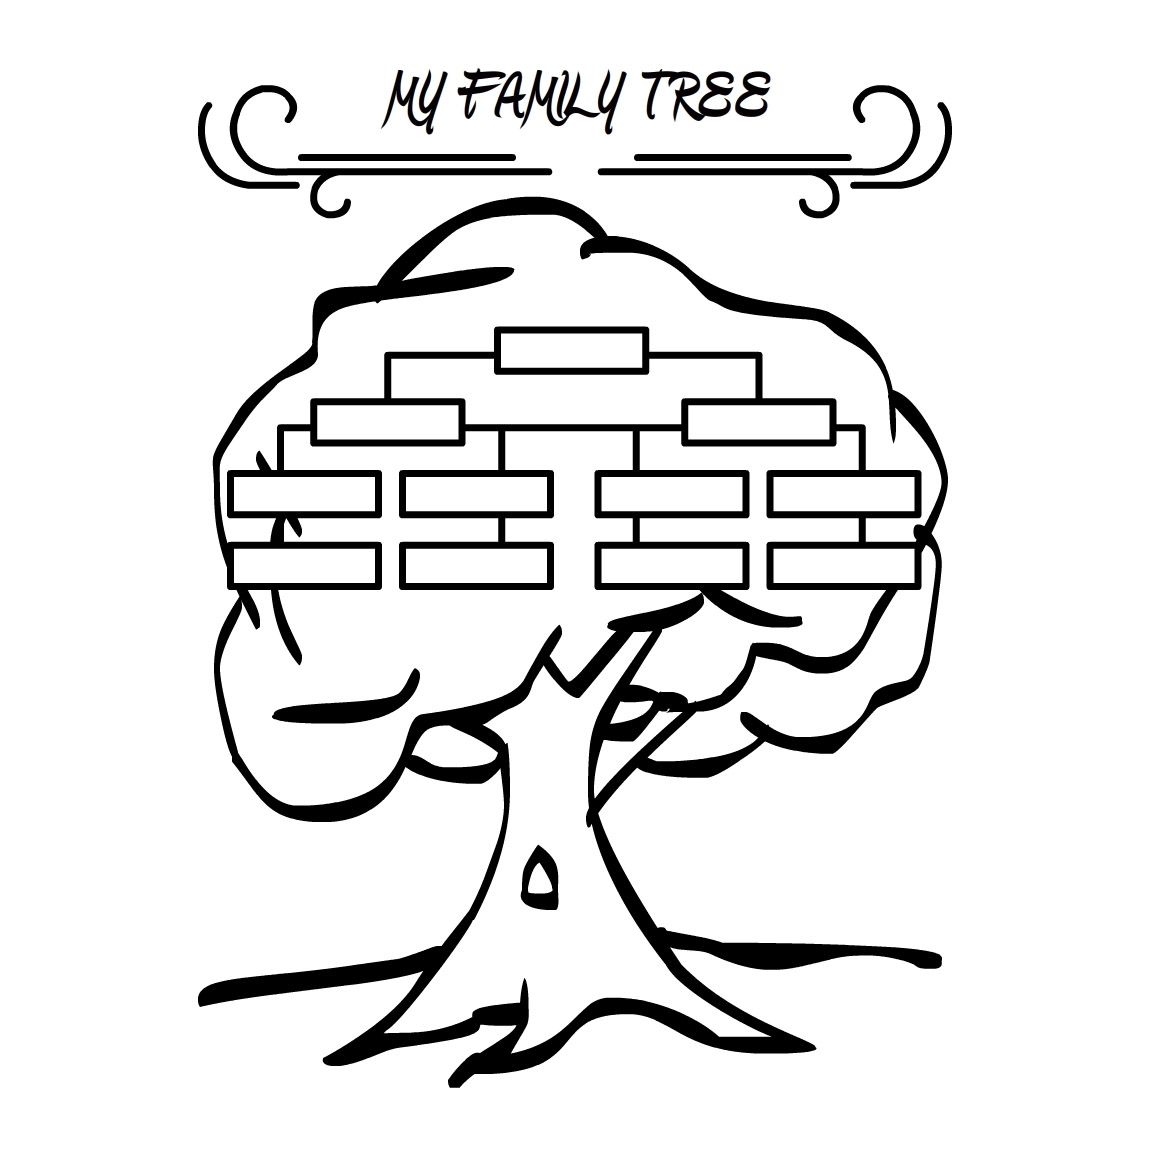 22 Clip Art Family Tree Family Tree Drawing Family Tree With